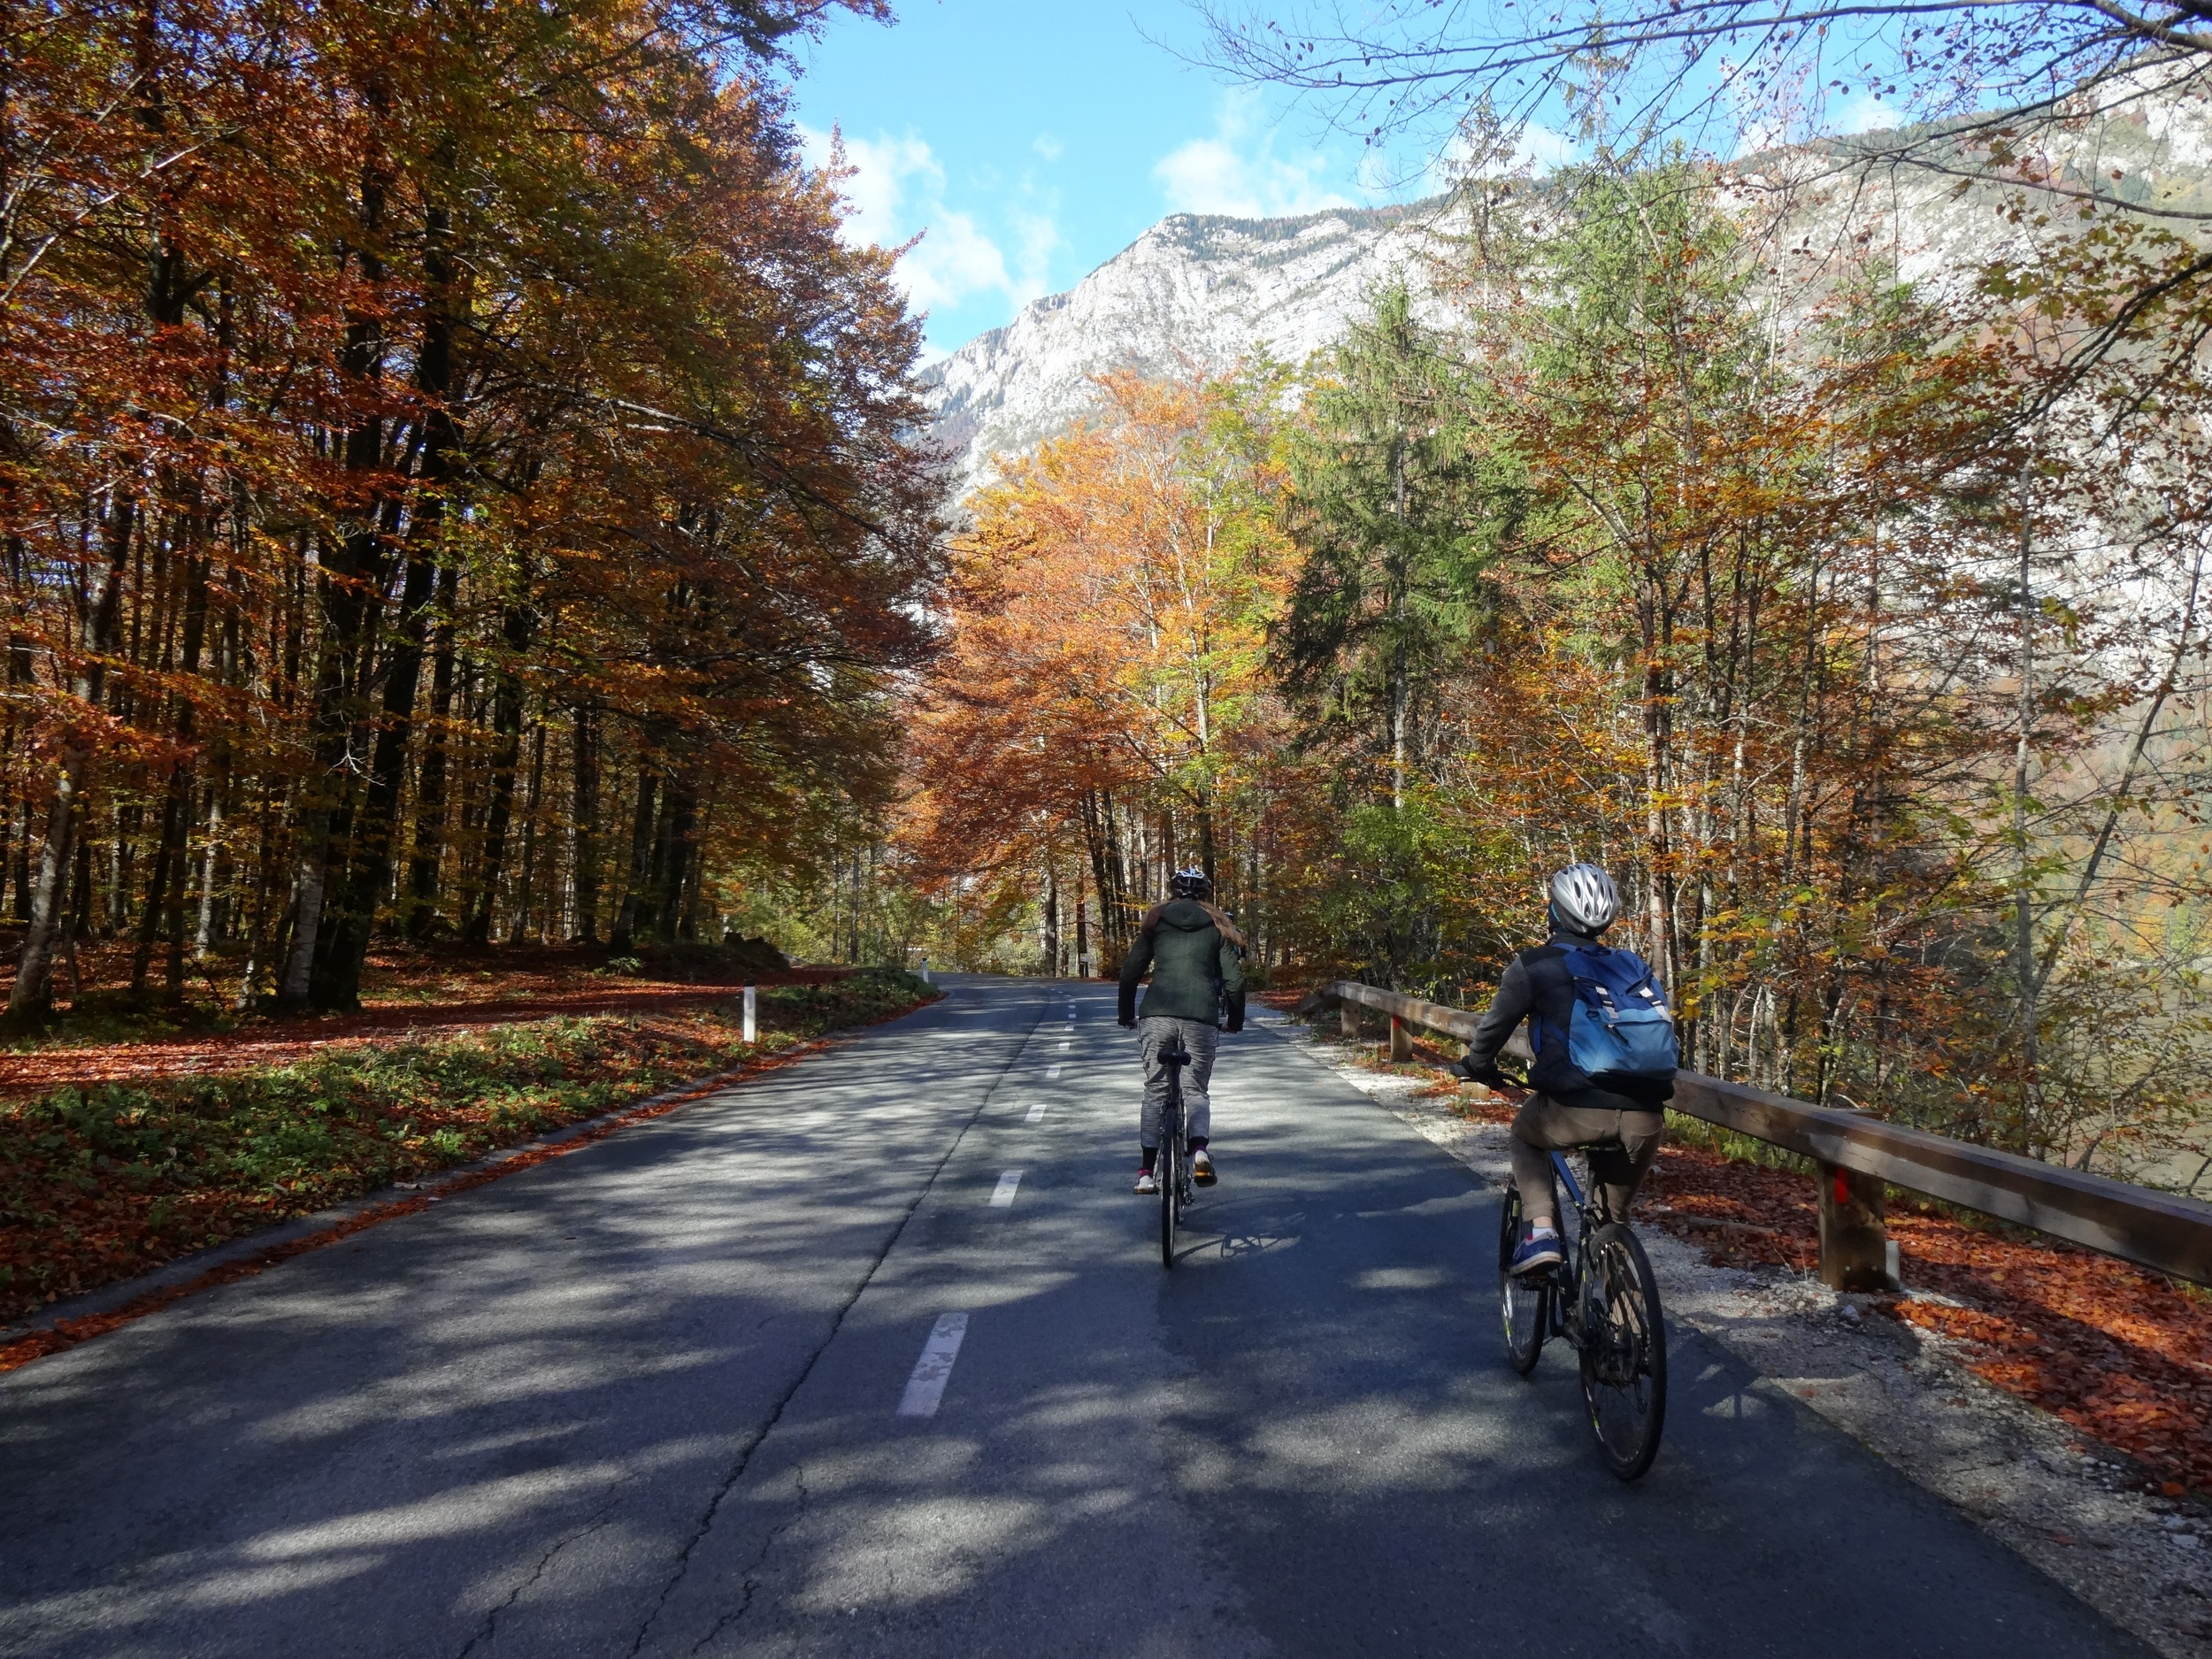 a day biking in slovenia with friends was afforded by cooking our meals with those same friends lake bled, slovenia -m.quigley